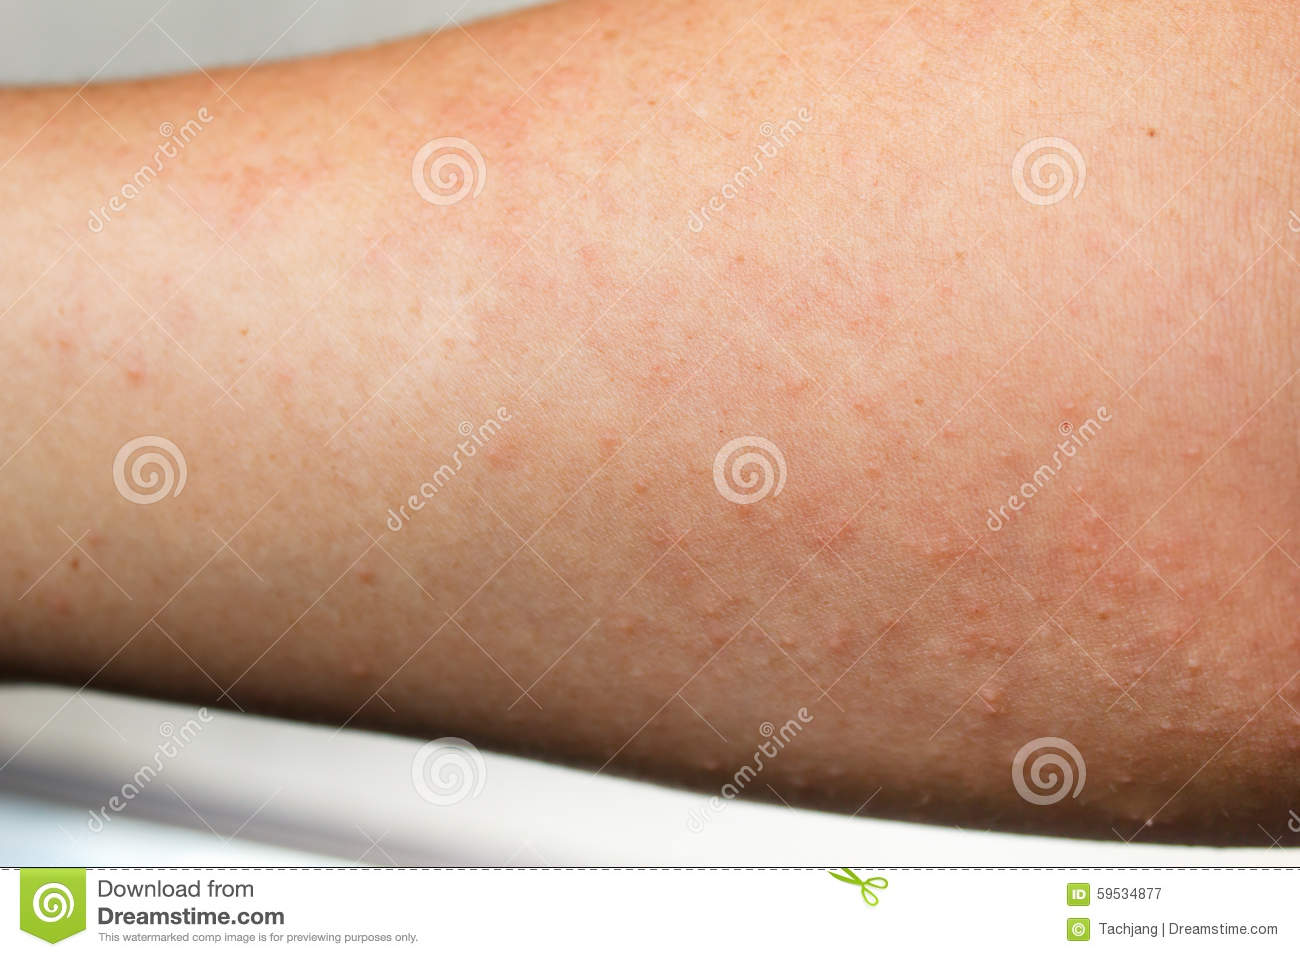 Human Skin, Presenting An Allergic Reaction. Stock Image